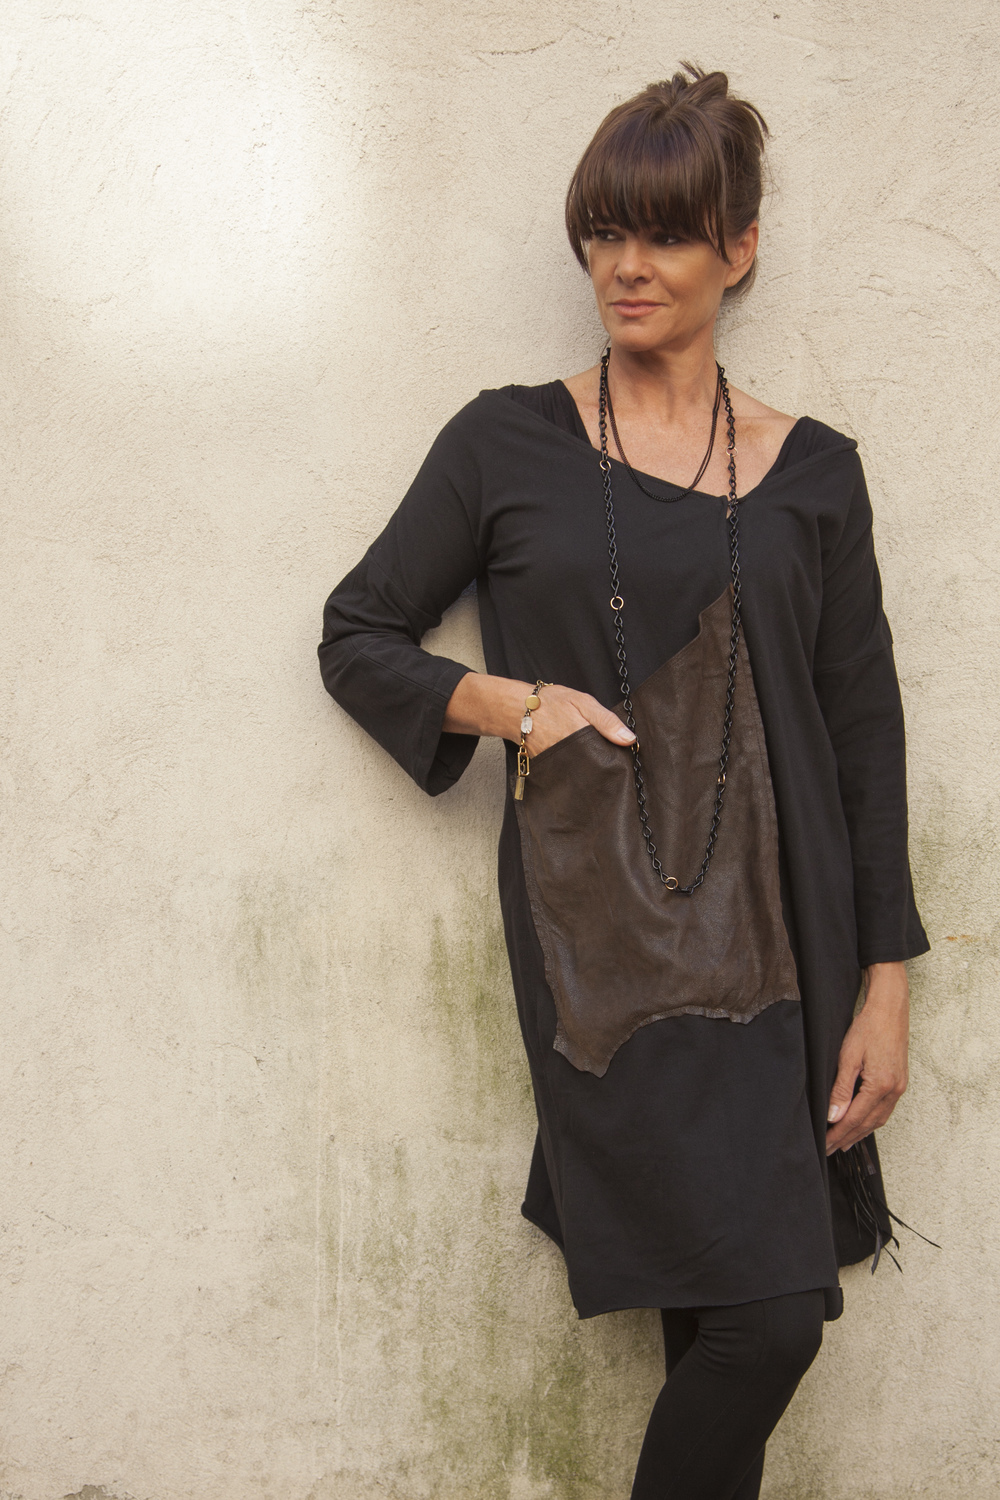 Barbara Campbell Handcrafted Artisan Fashion Made In Brooklyn In The USA